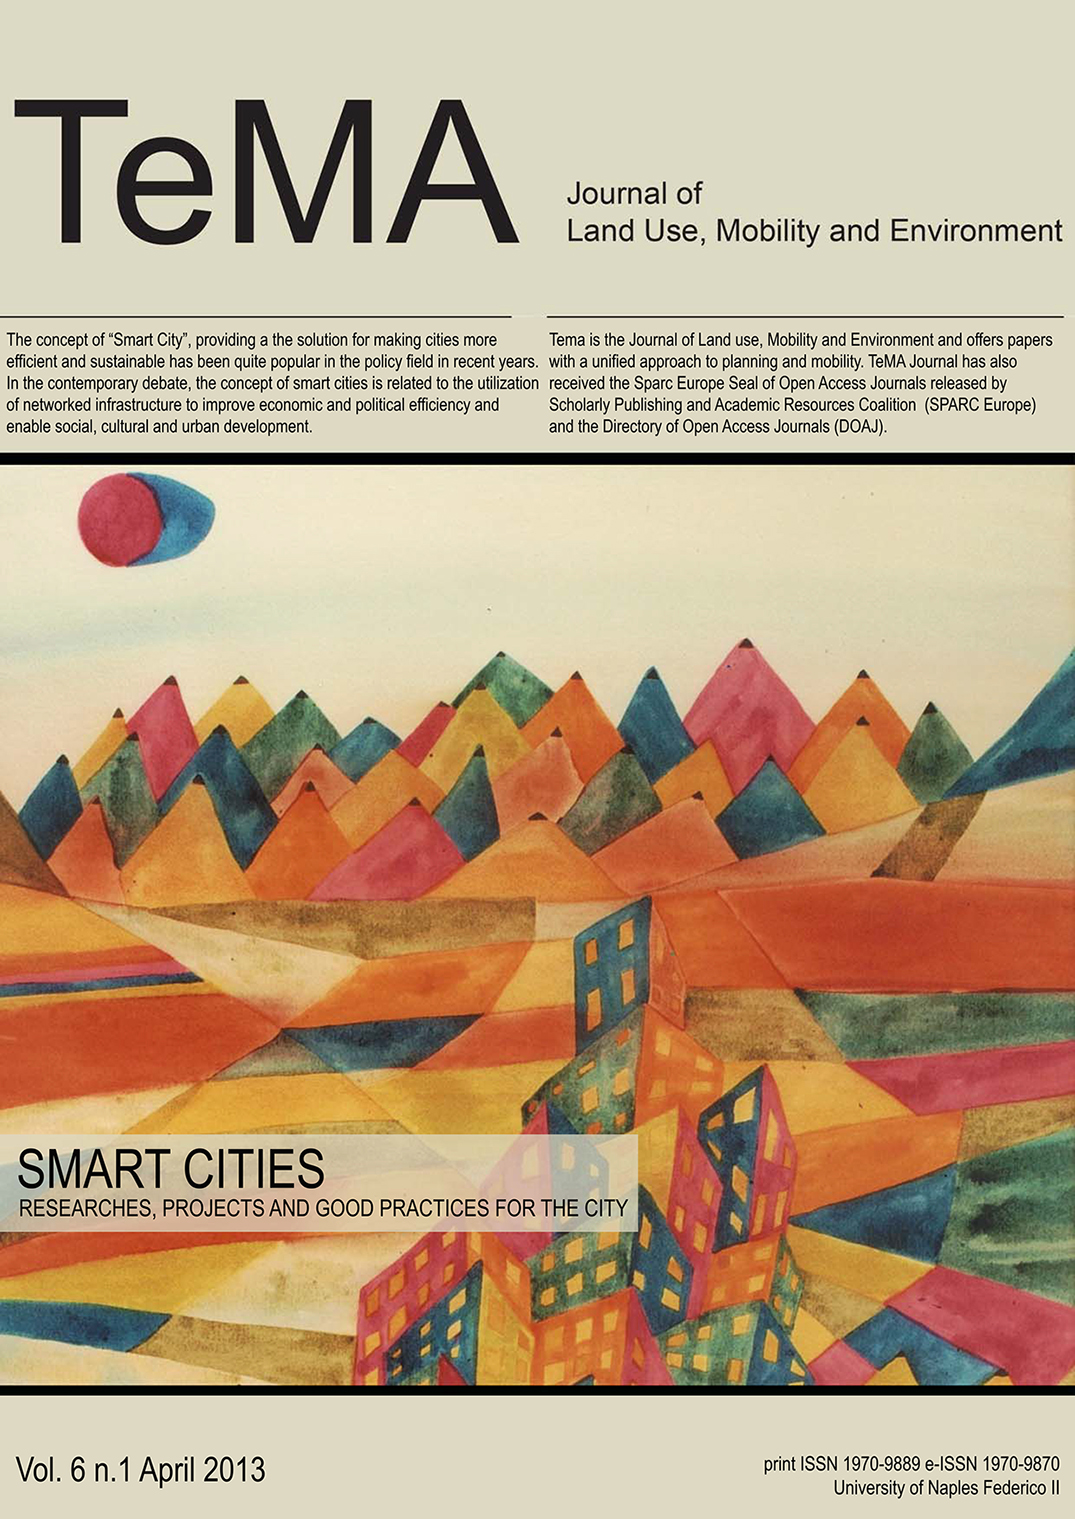 22_Vol 6 N° 1 (2013) Smart Cities Researches, Projects and Good Practices for the City